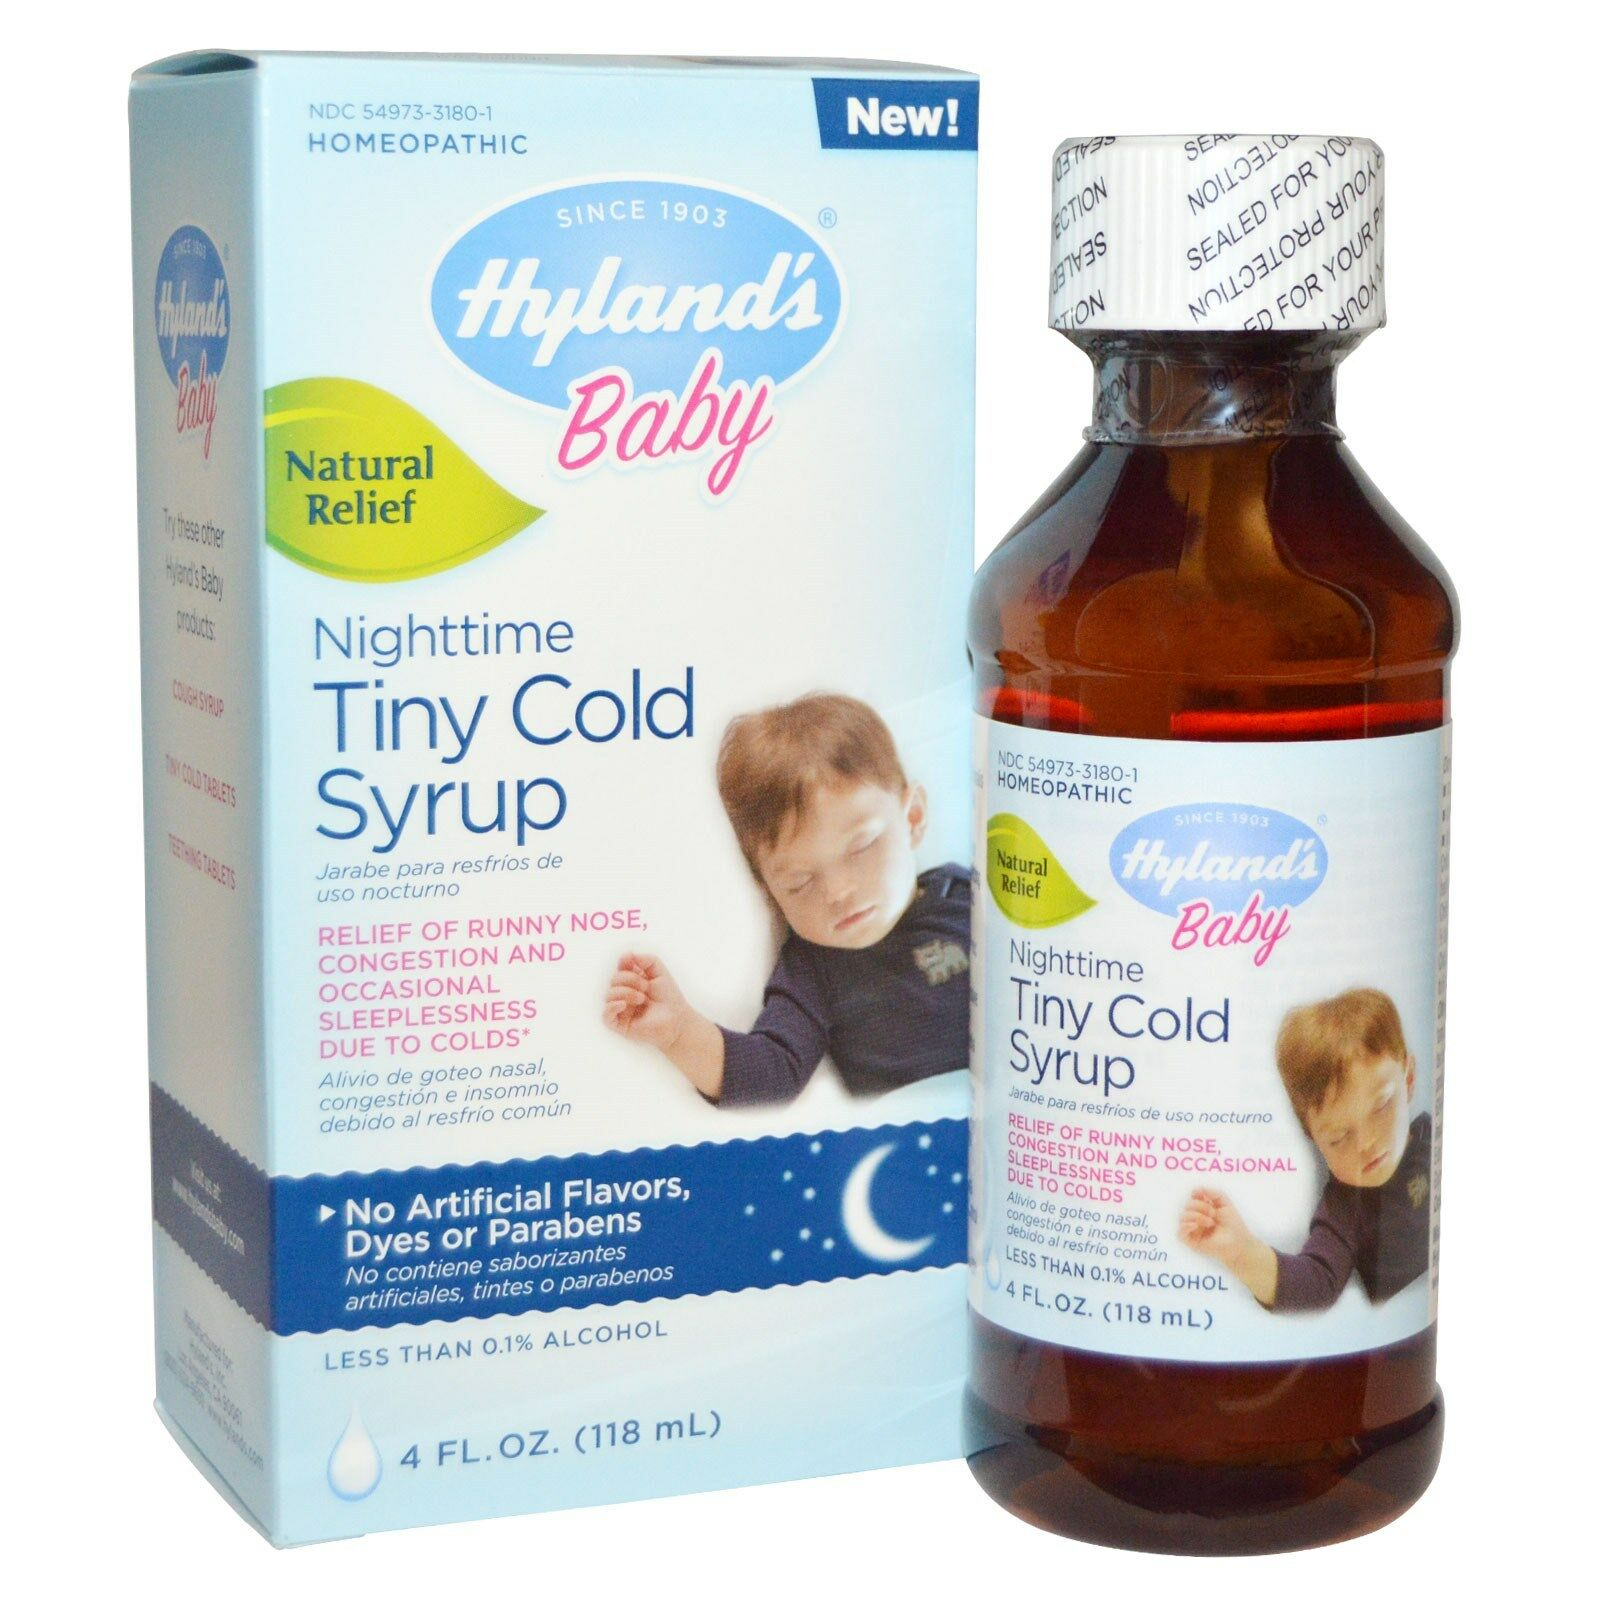 Hylands Homepathic Medicine Cold Syrup - Nighttime Tiny - Ba